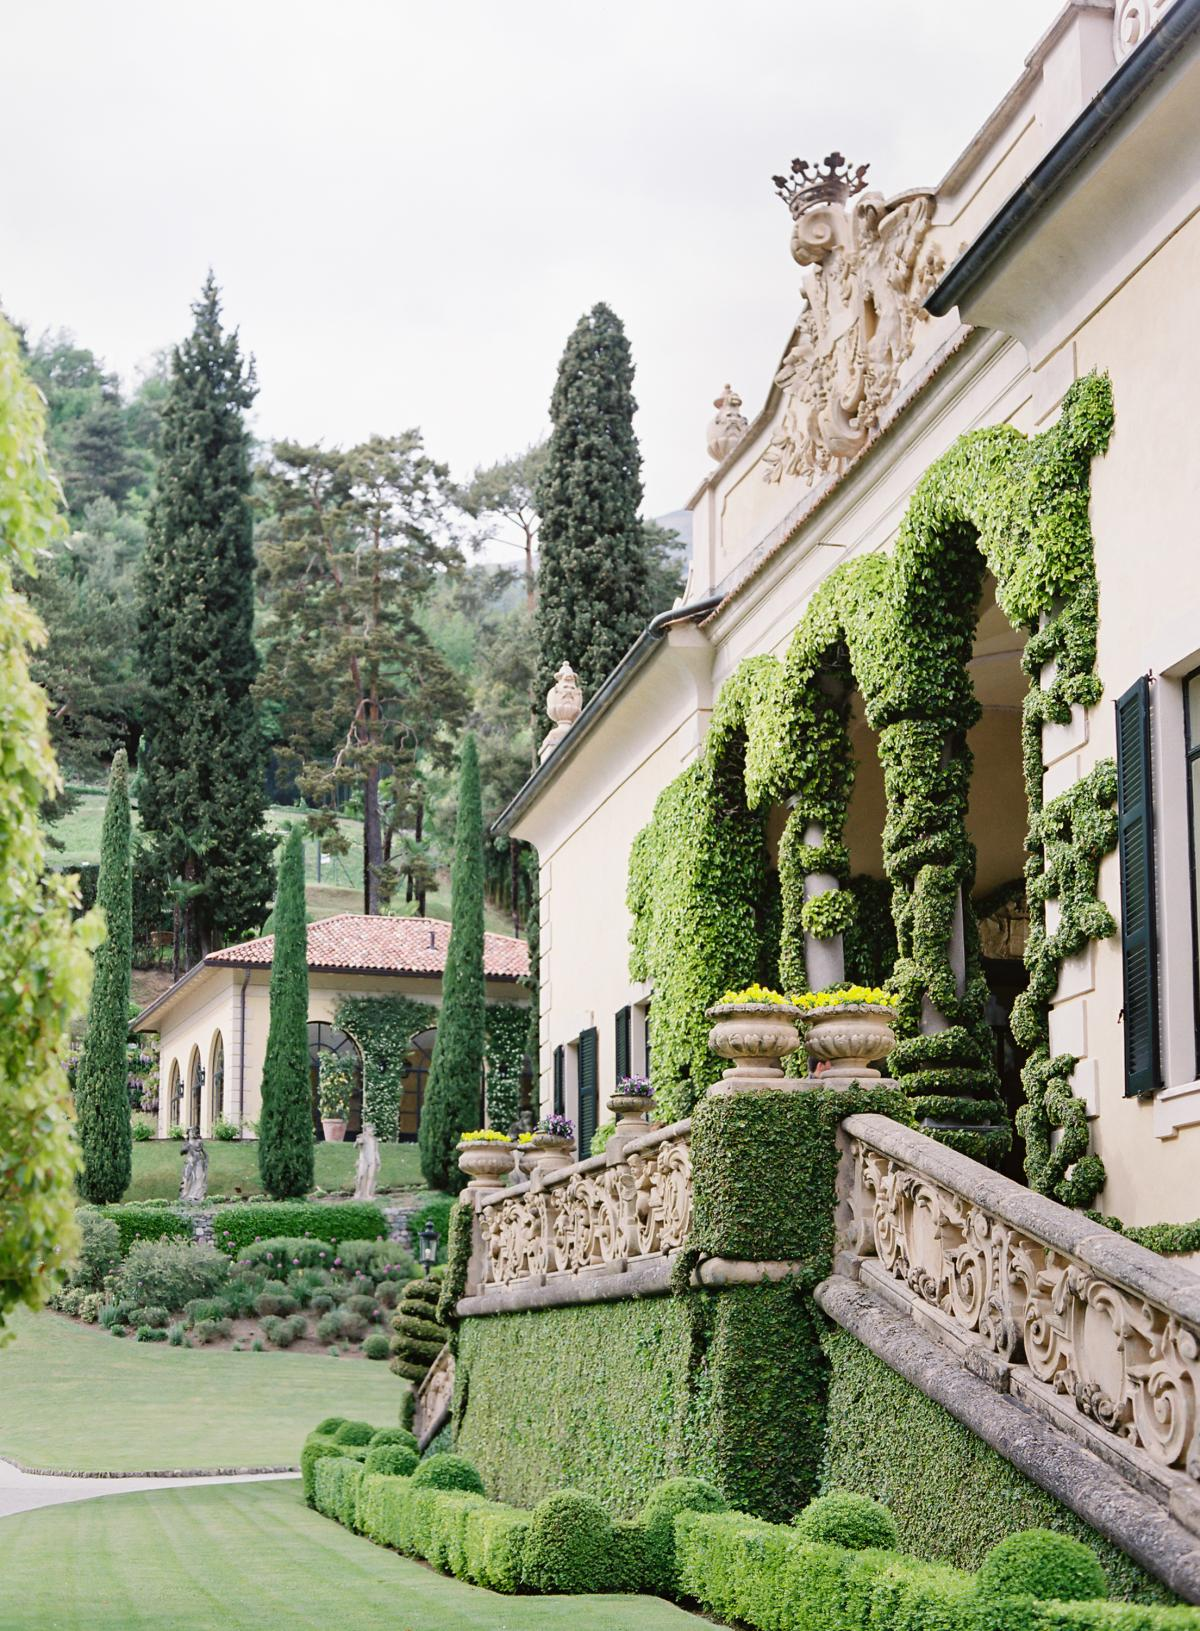 Lake Como Villa Del Balbianello Wedding Omalley Photographers 0021